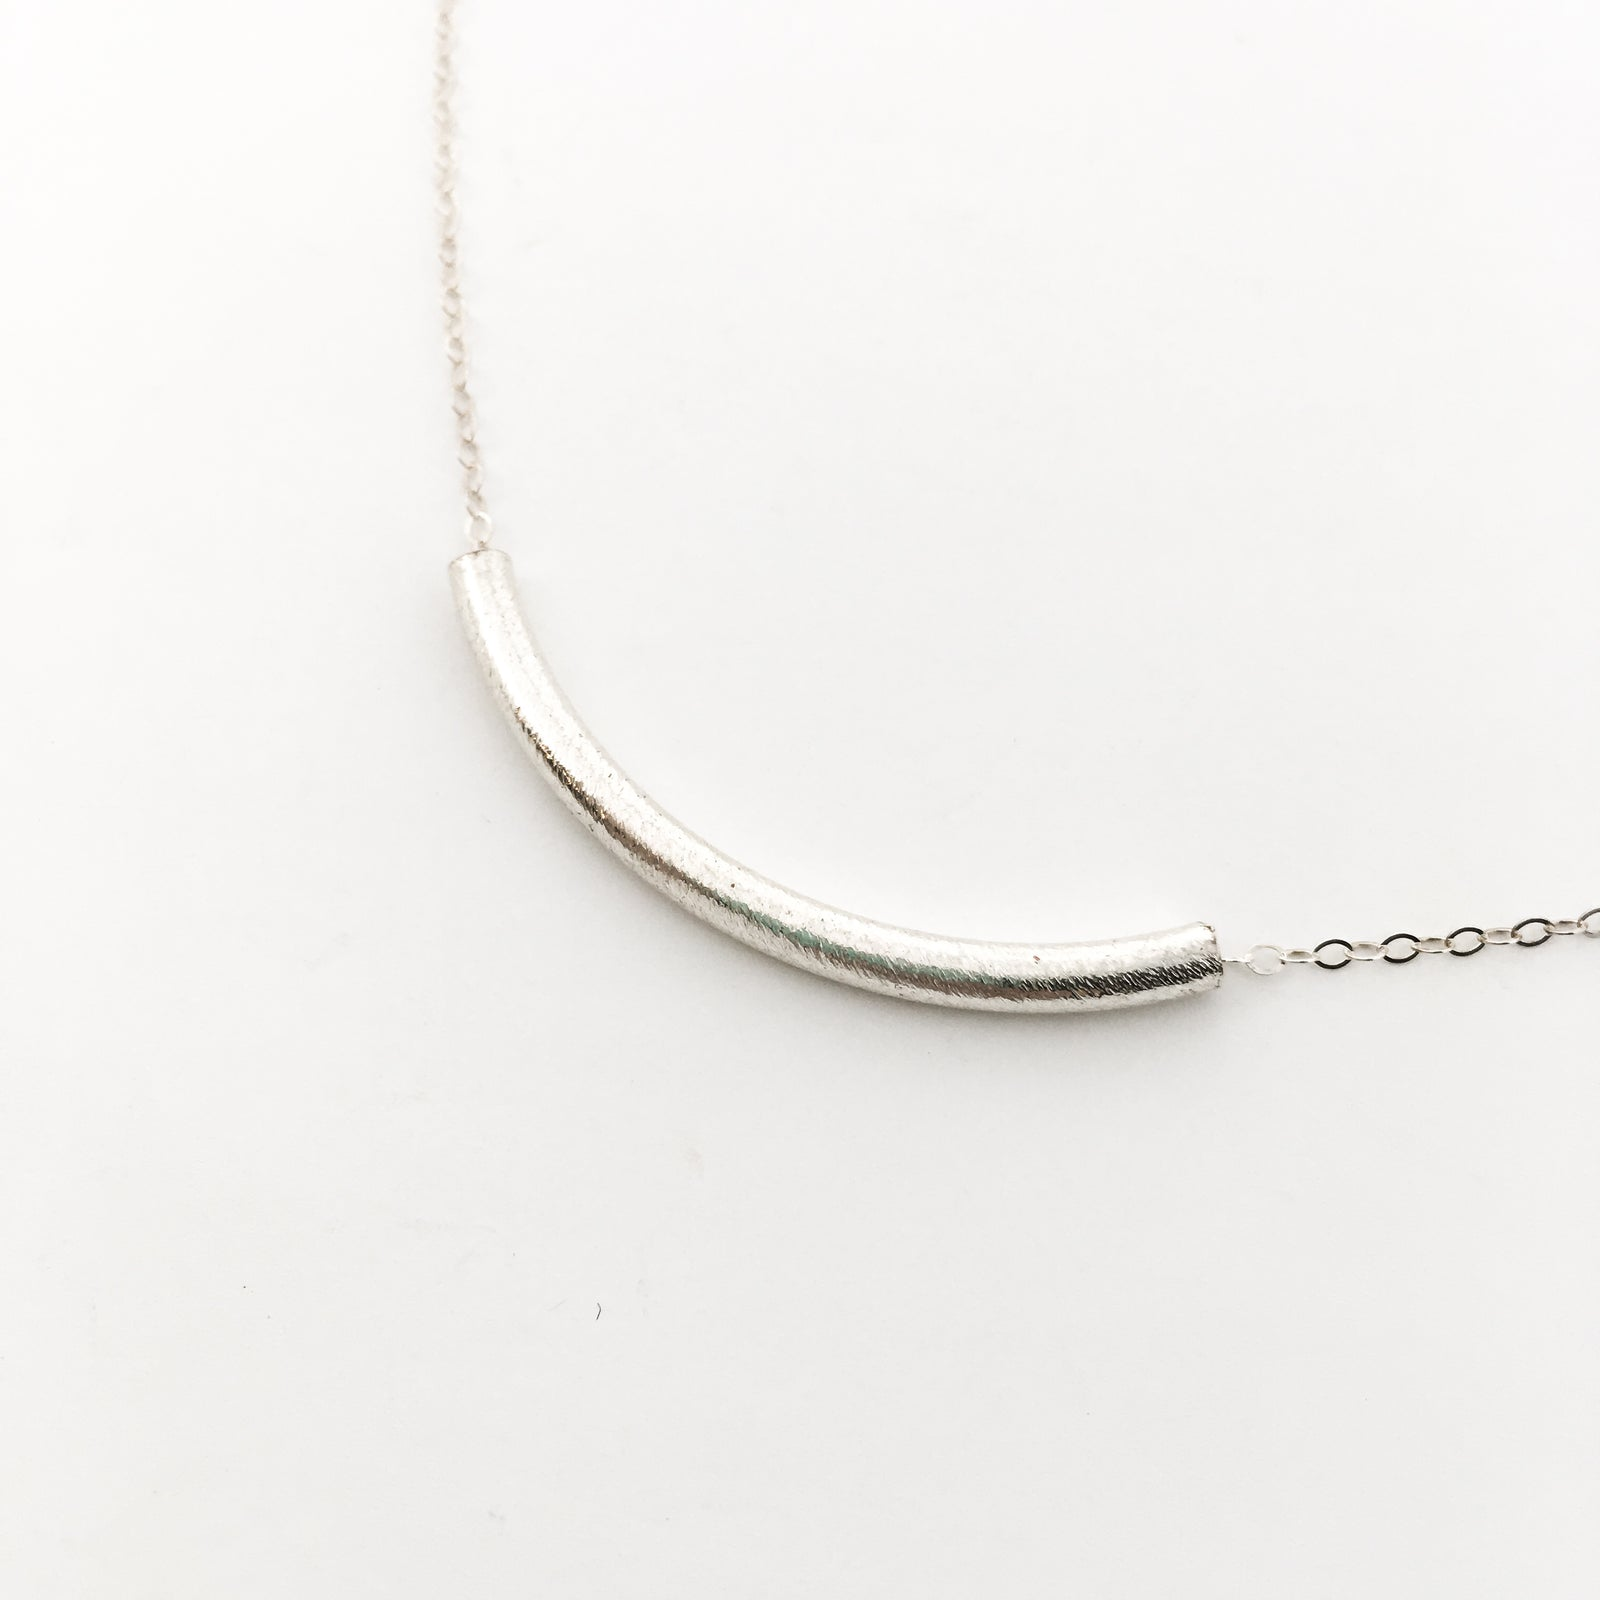 BRUSH CURVED BAR NECKLACES | STERLING SILVER | SIZE OPTIONS